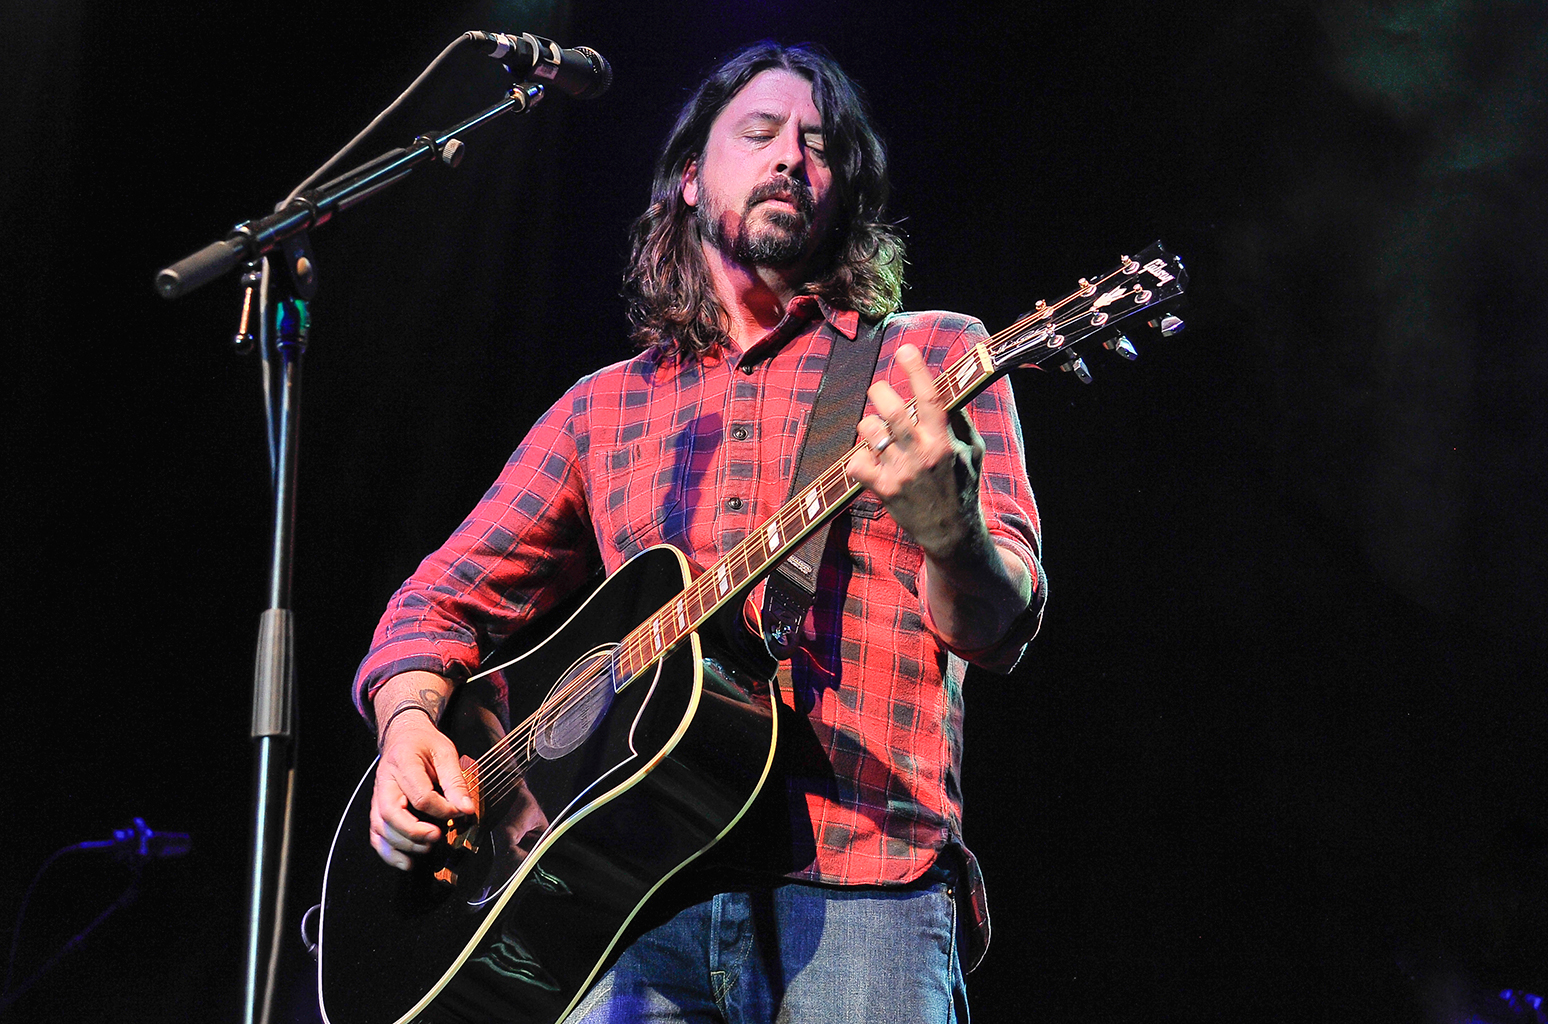 Here's some new Foo Fighters music!